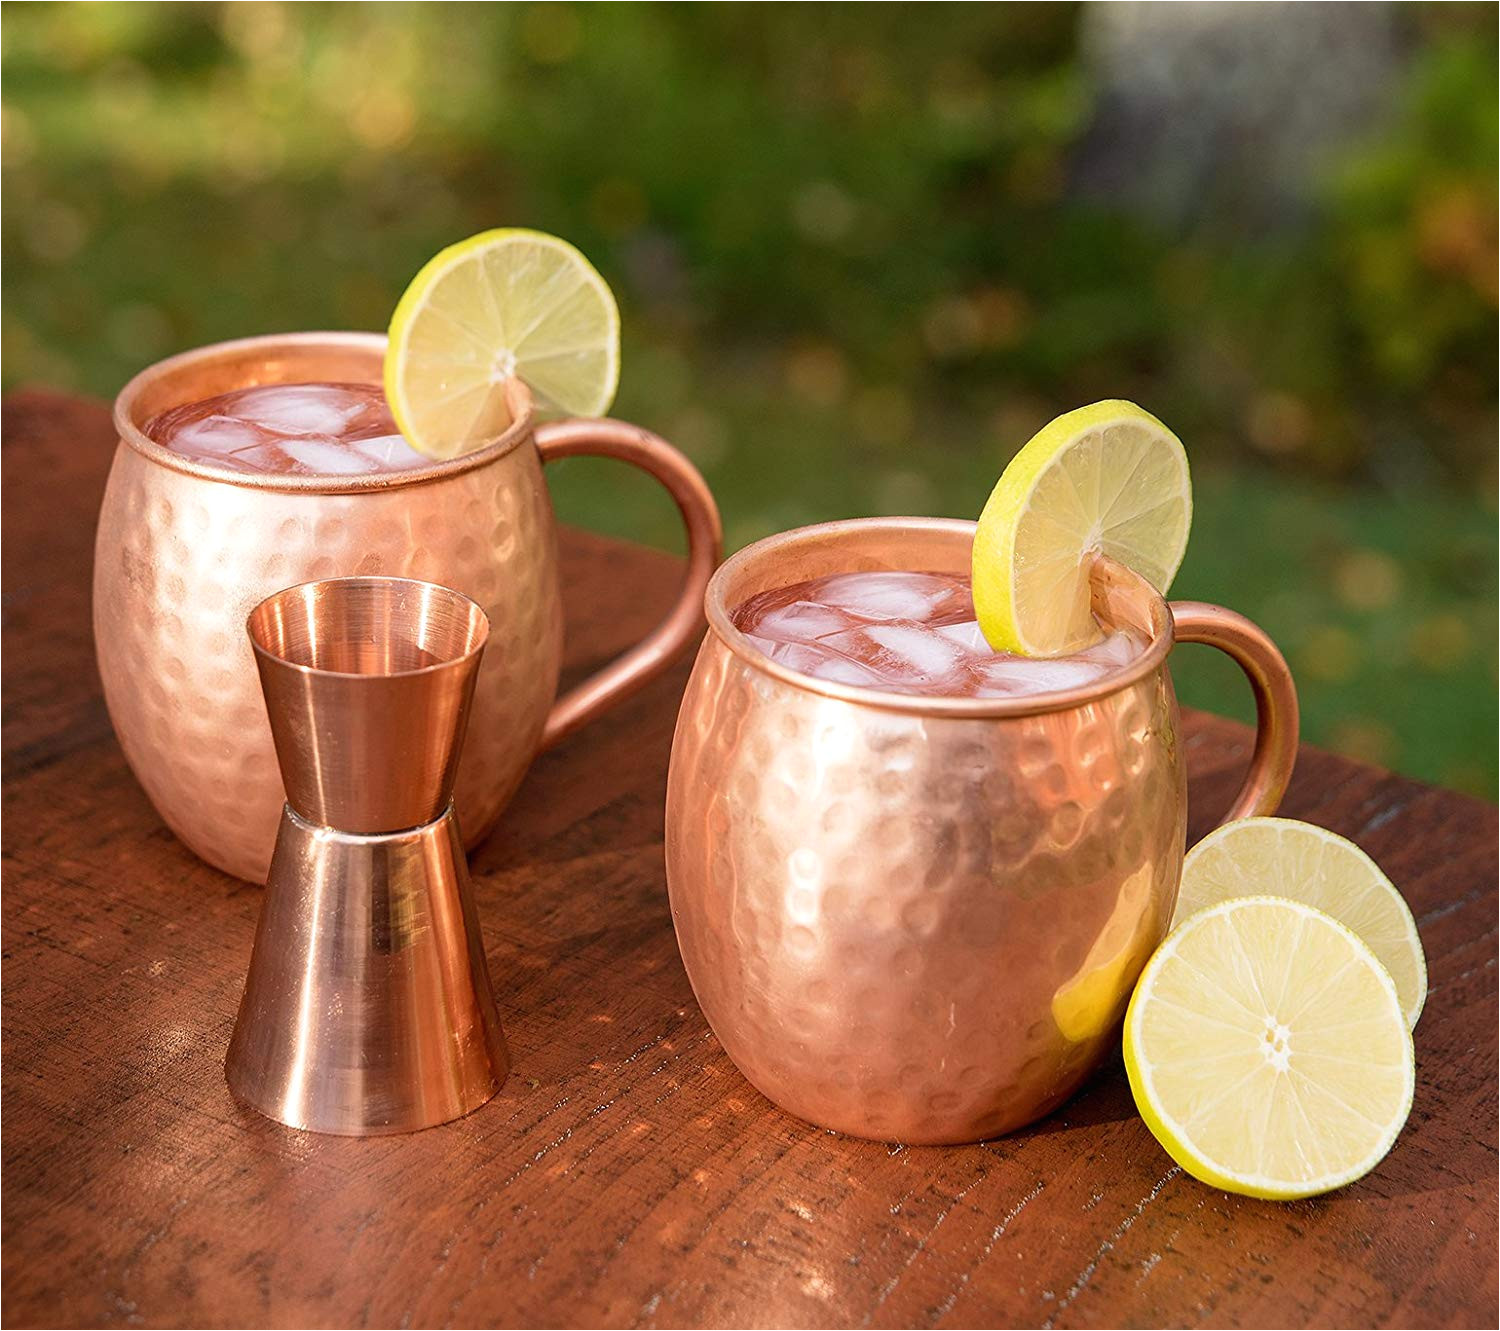 naava moscow mule becher set 2 kupfer becher geschenk set fur damen herren perfekt fur partys drinks an der bar gratis shot jigger amazon de